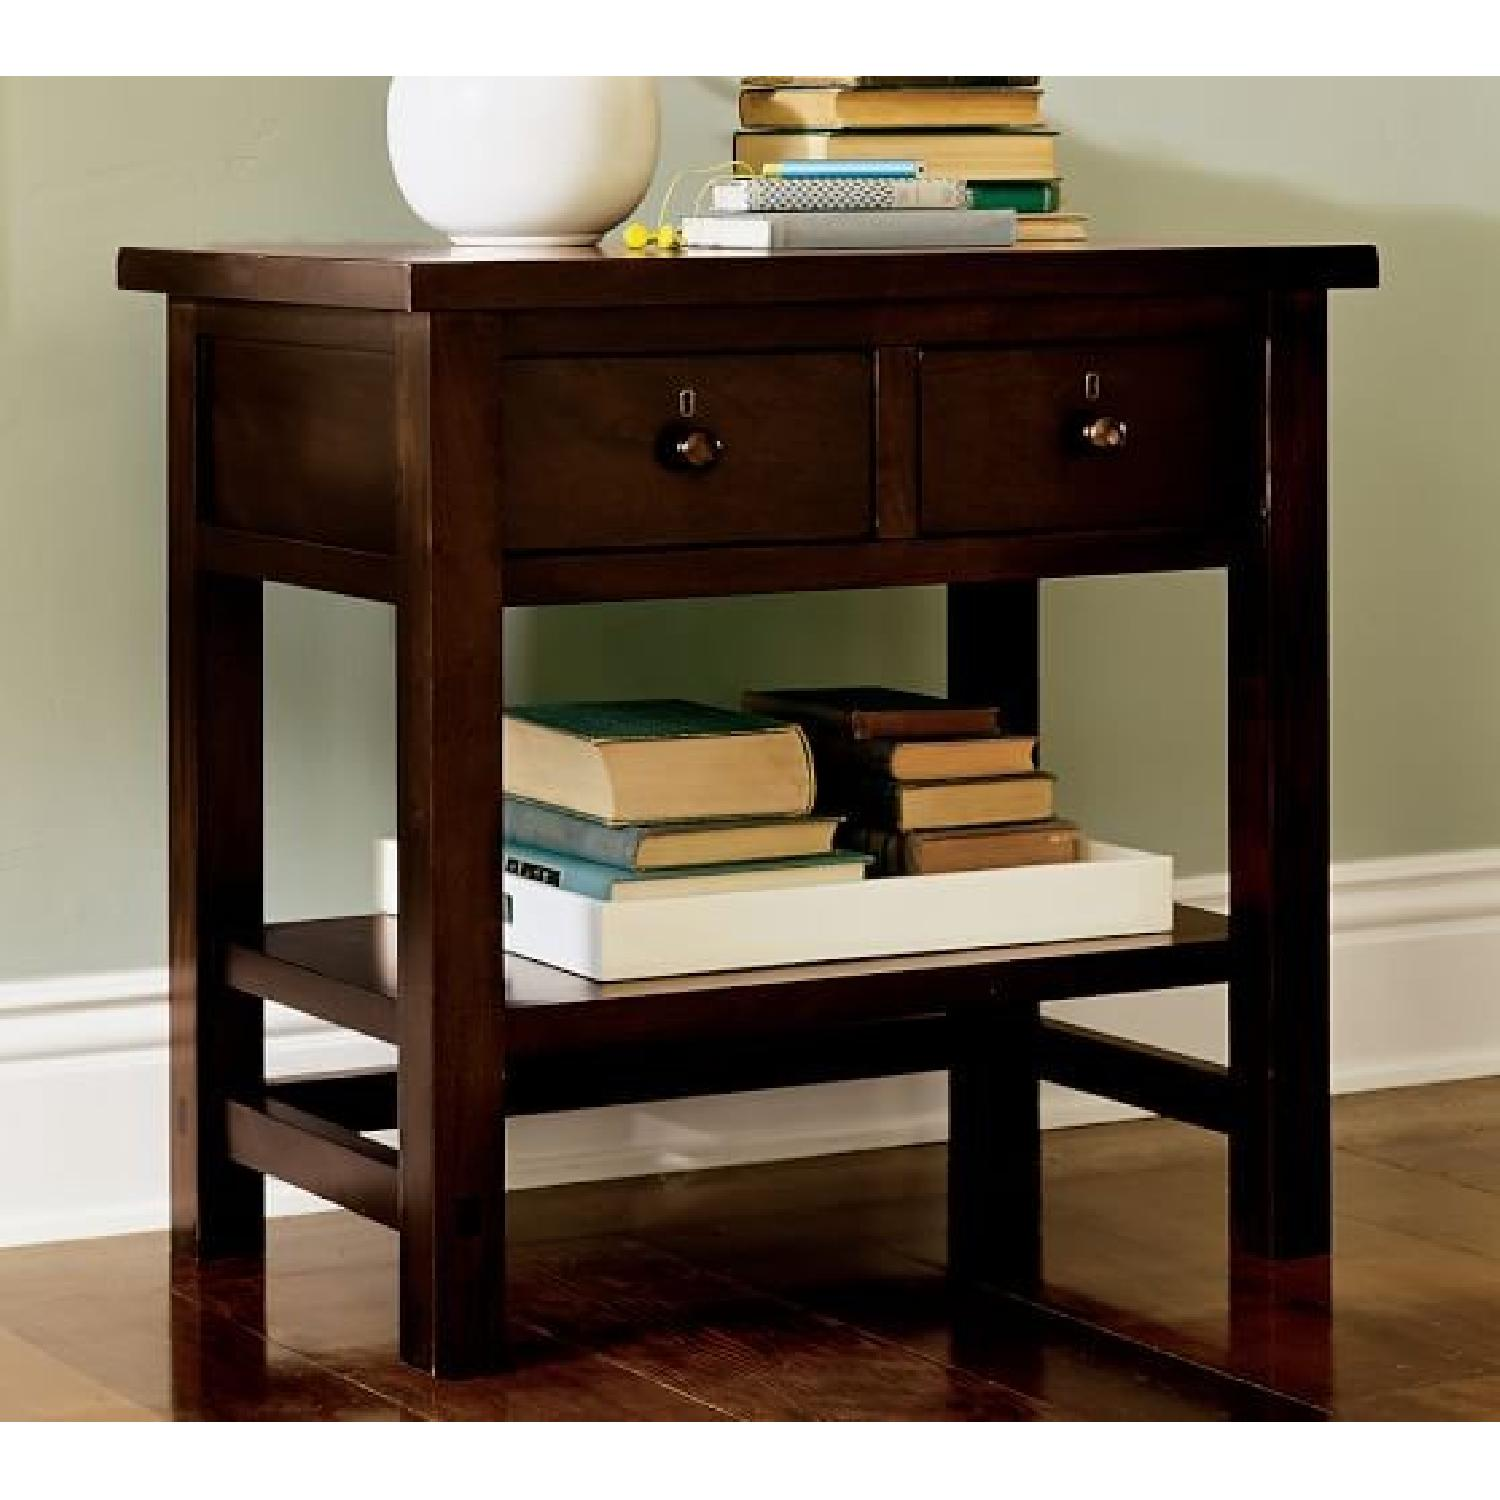 Pottery Barn Farmhouse Two-Drawer Bedside Tables